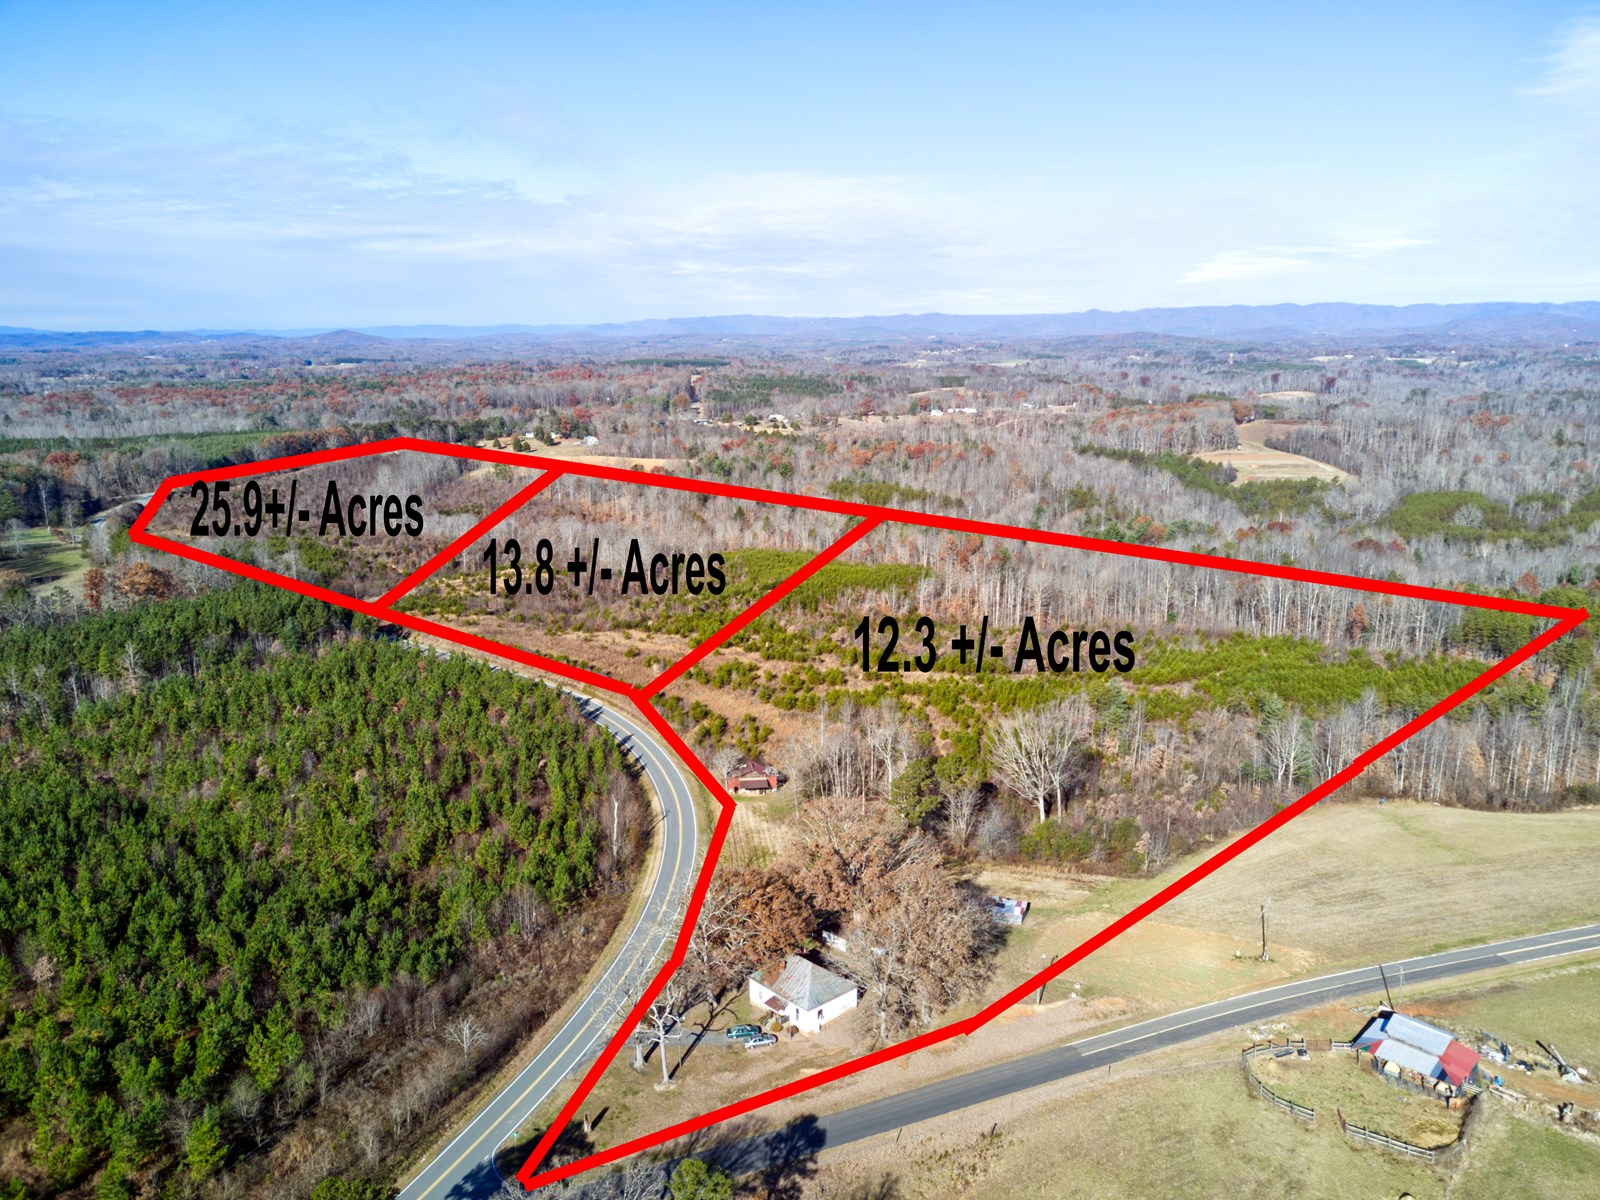 Land for sale in Westfield NC